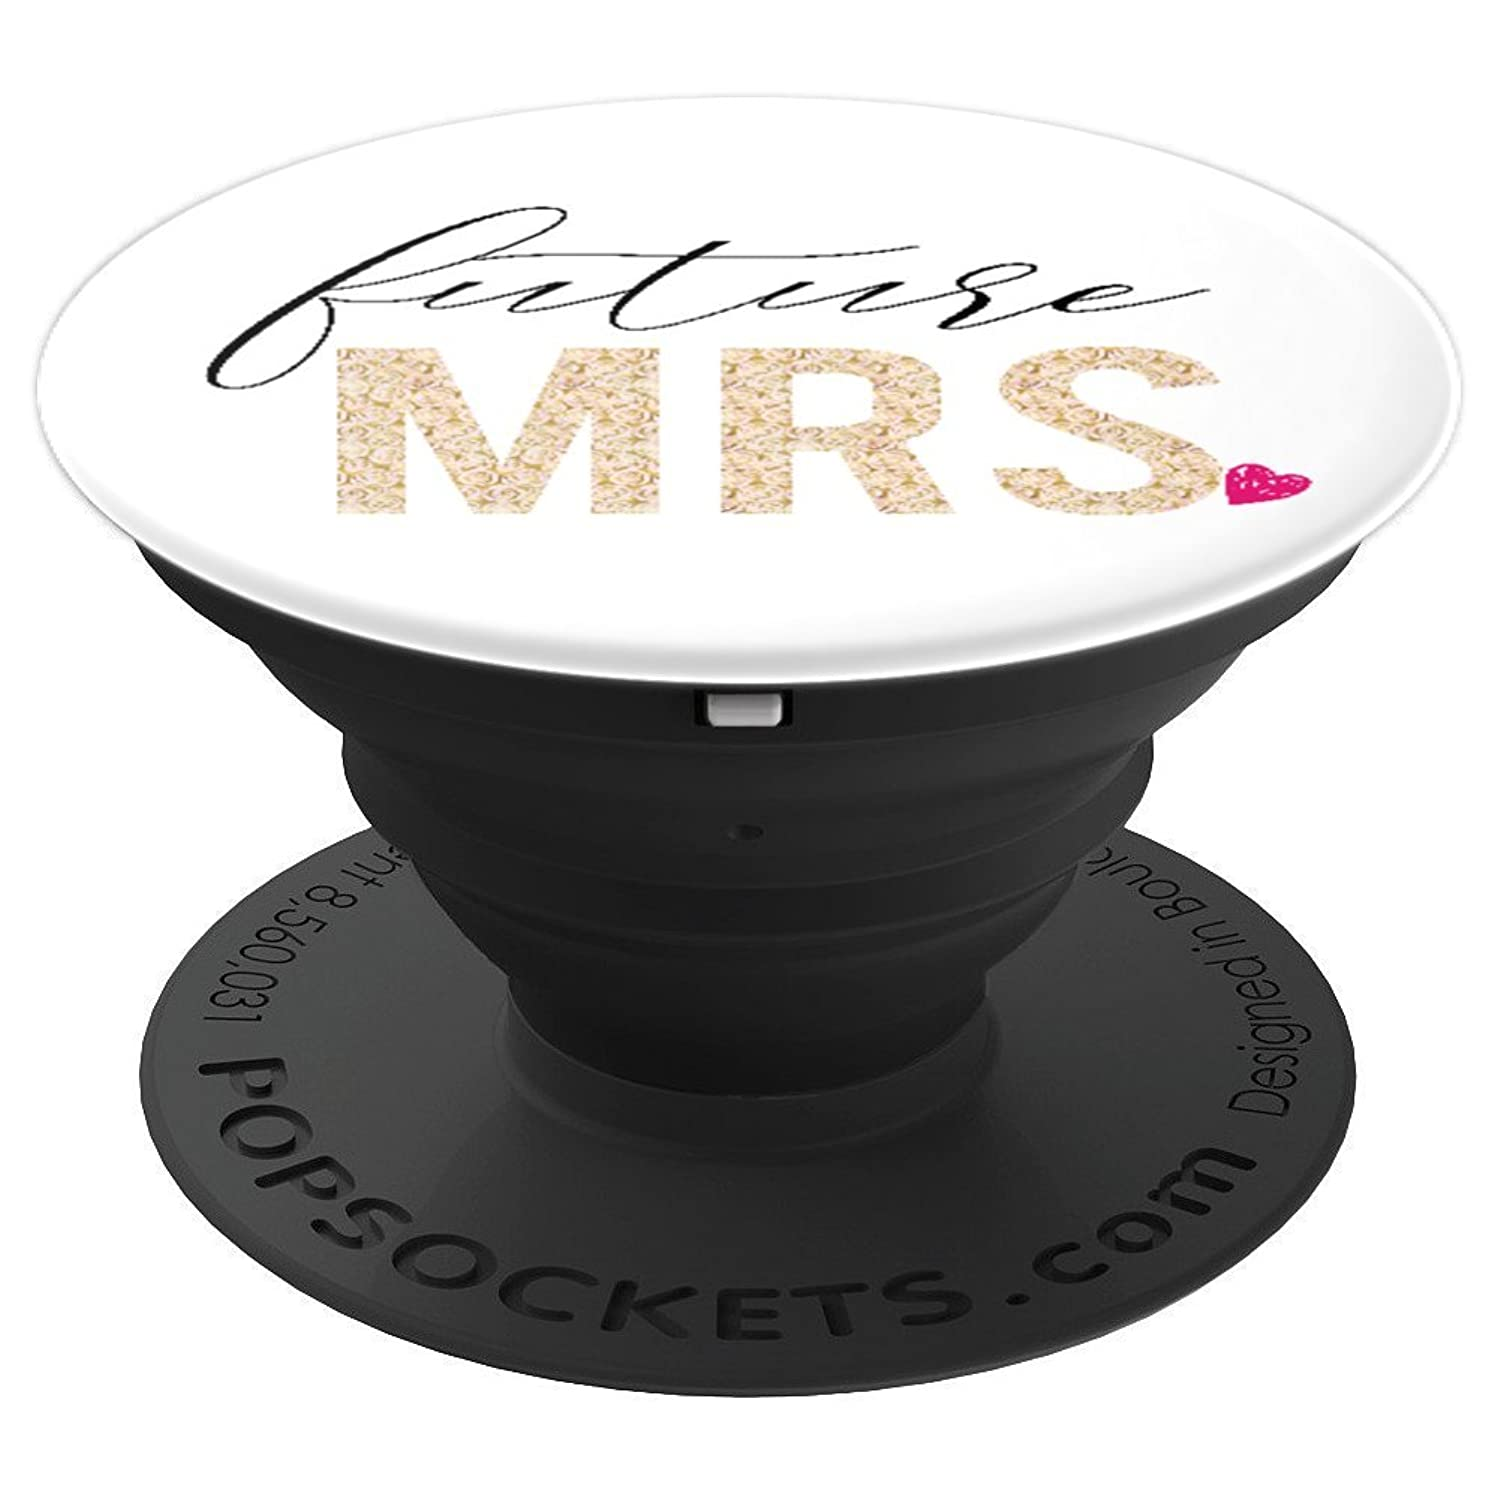 Future Mrs Engagement Gift For Bride - PopSockets Grip and Stand for Phones and Tablets